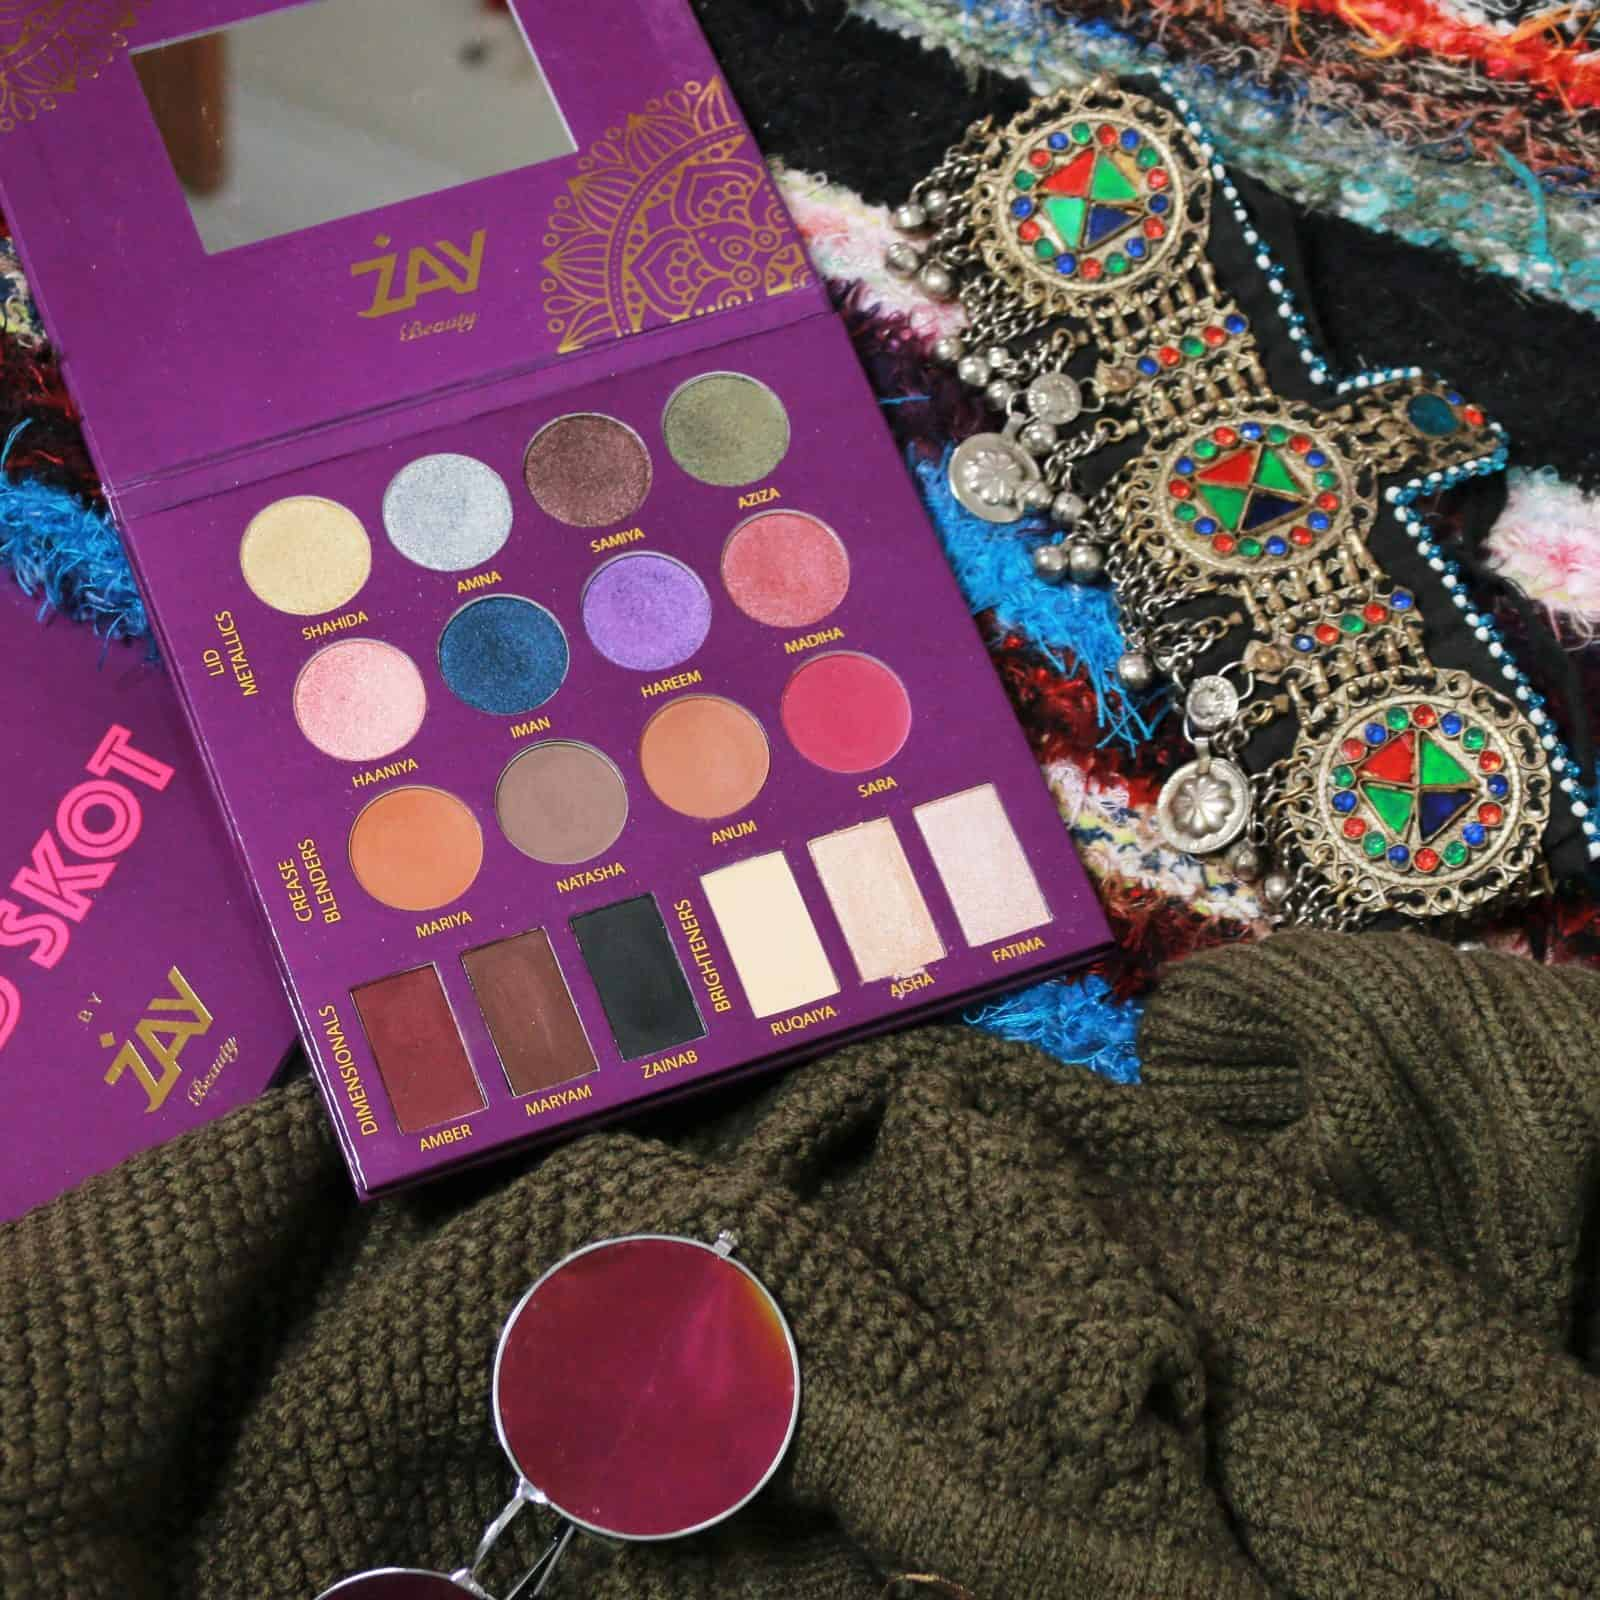 Zay Beauty Mod Skot Palette Review and Swatches